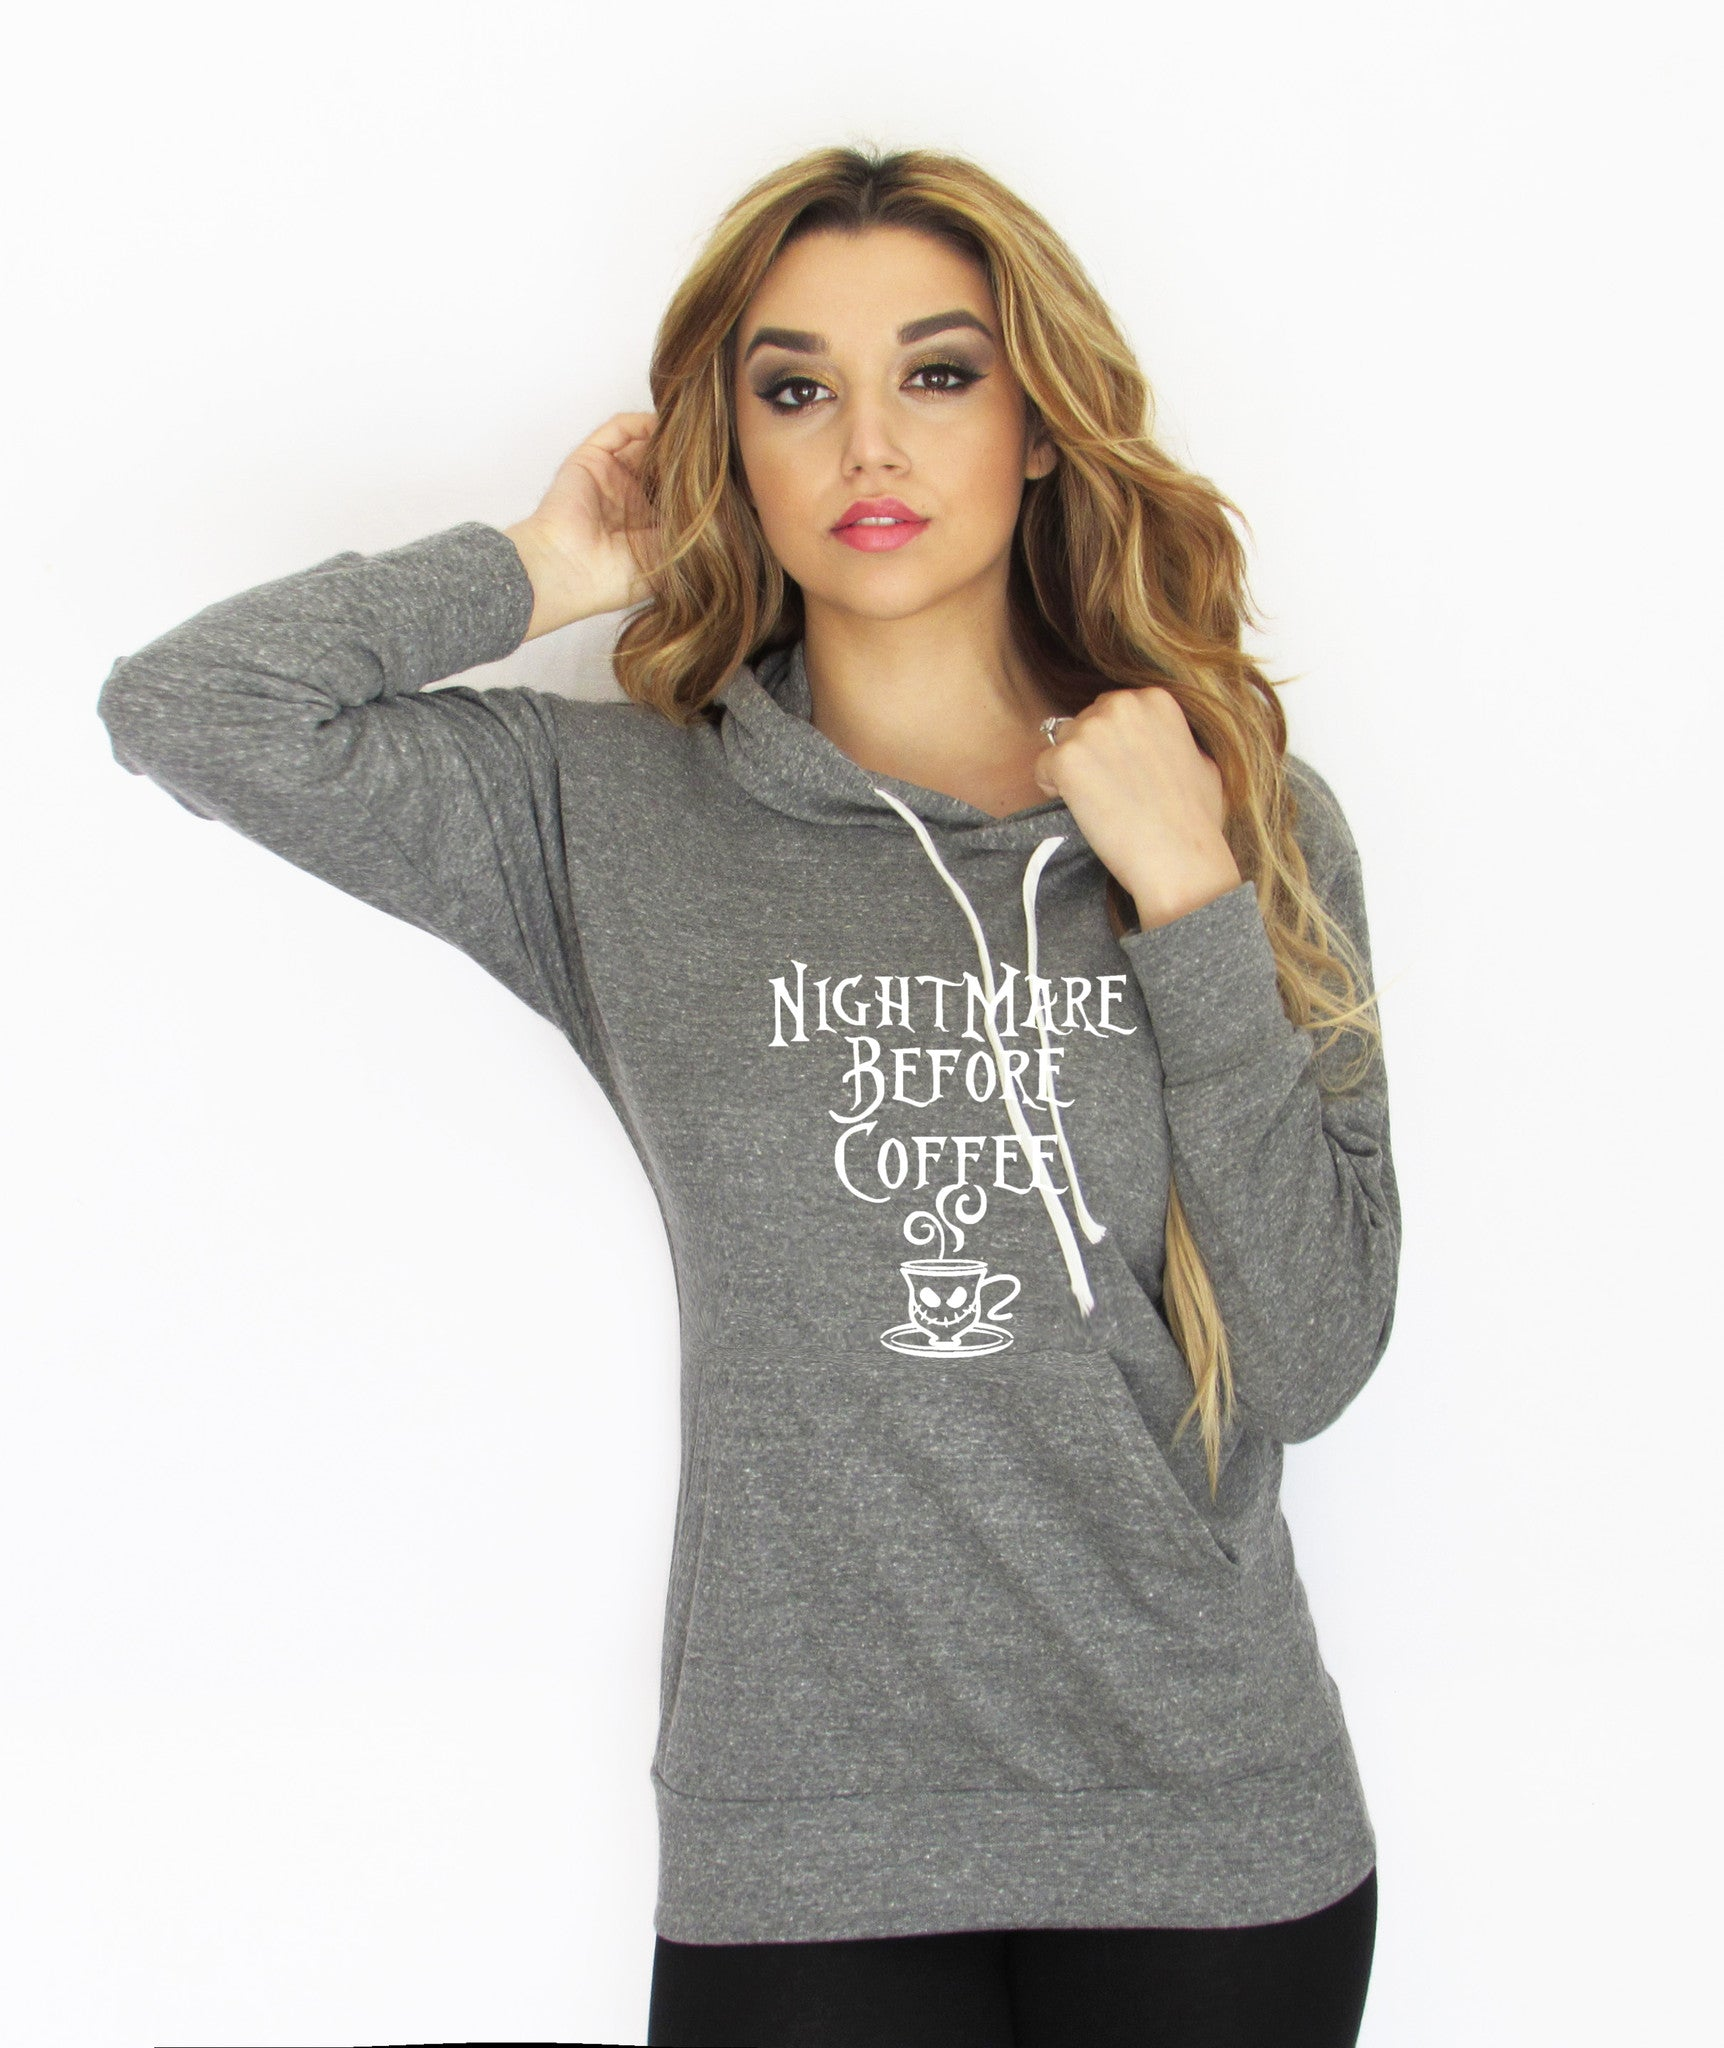 Nightmare before coffee Light Weight Hoodie made by Think Elite.